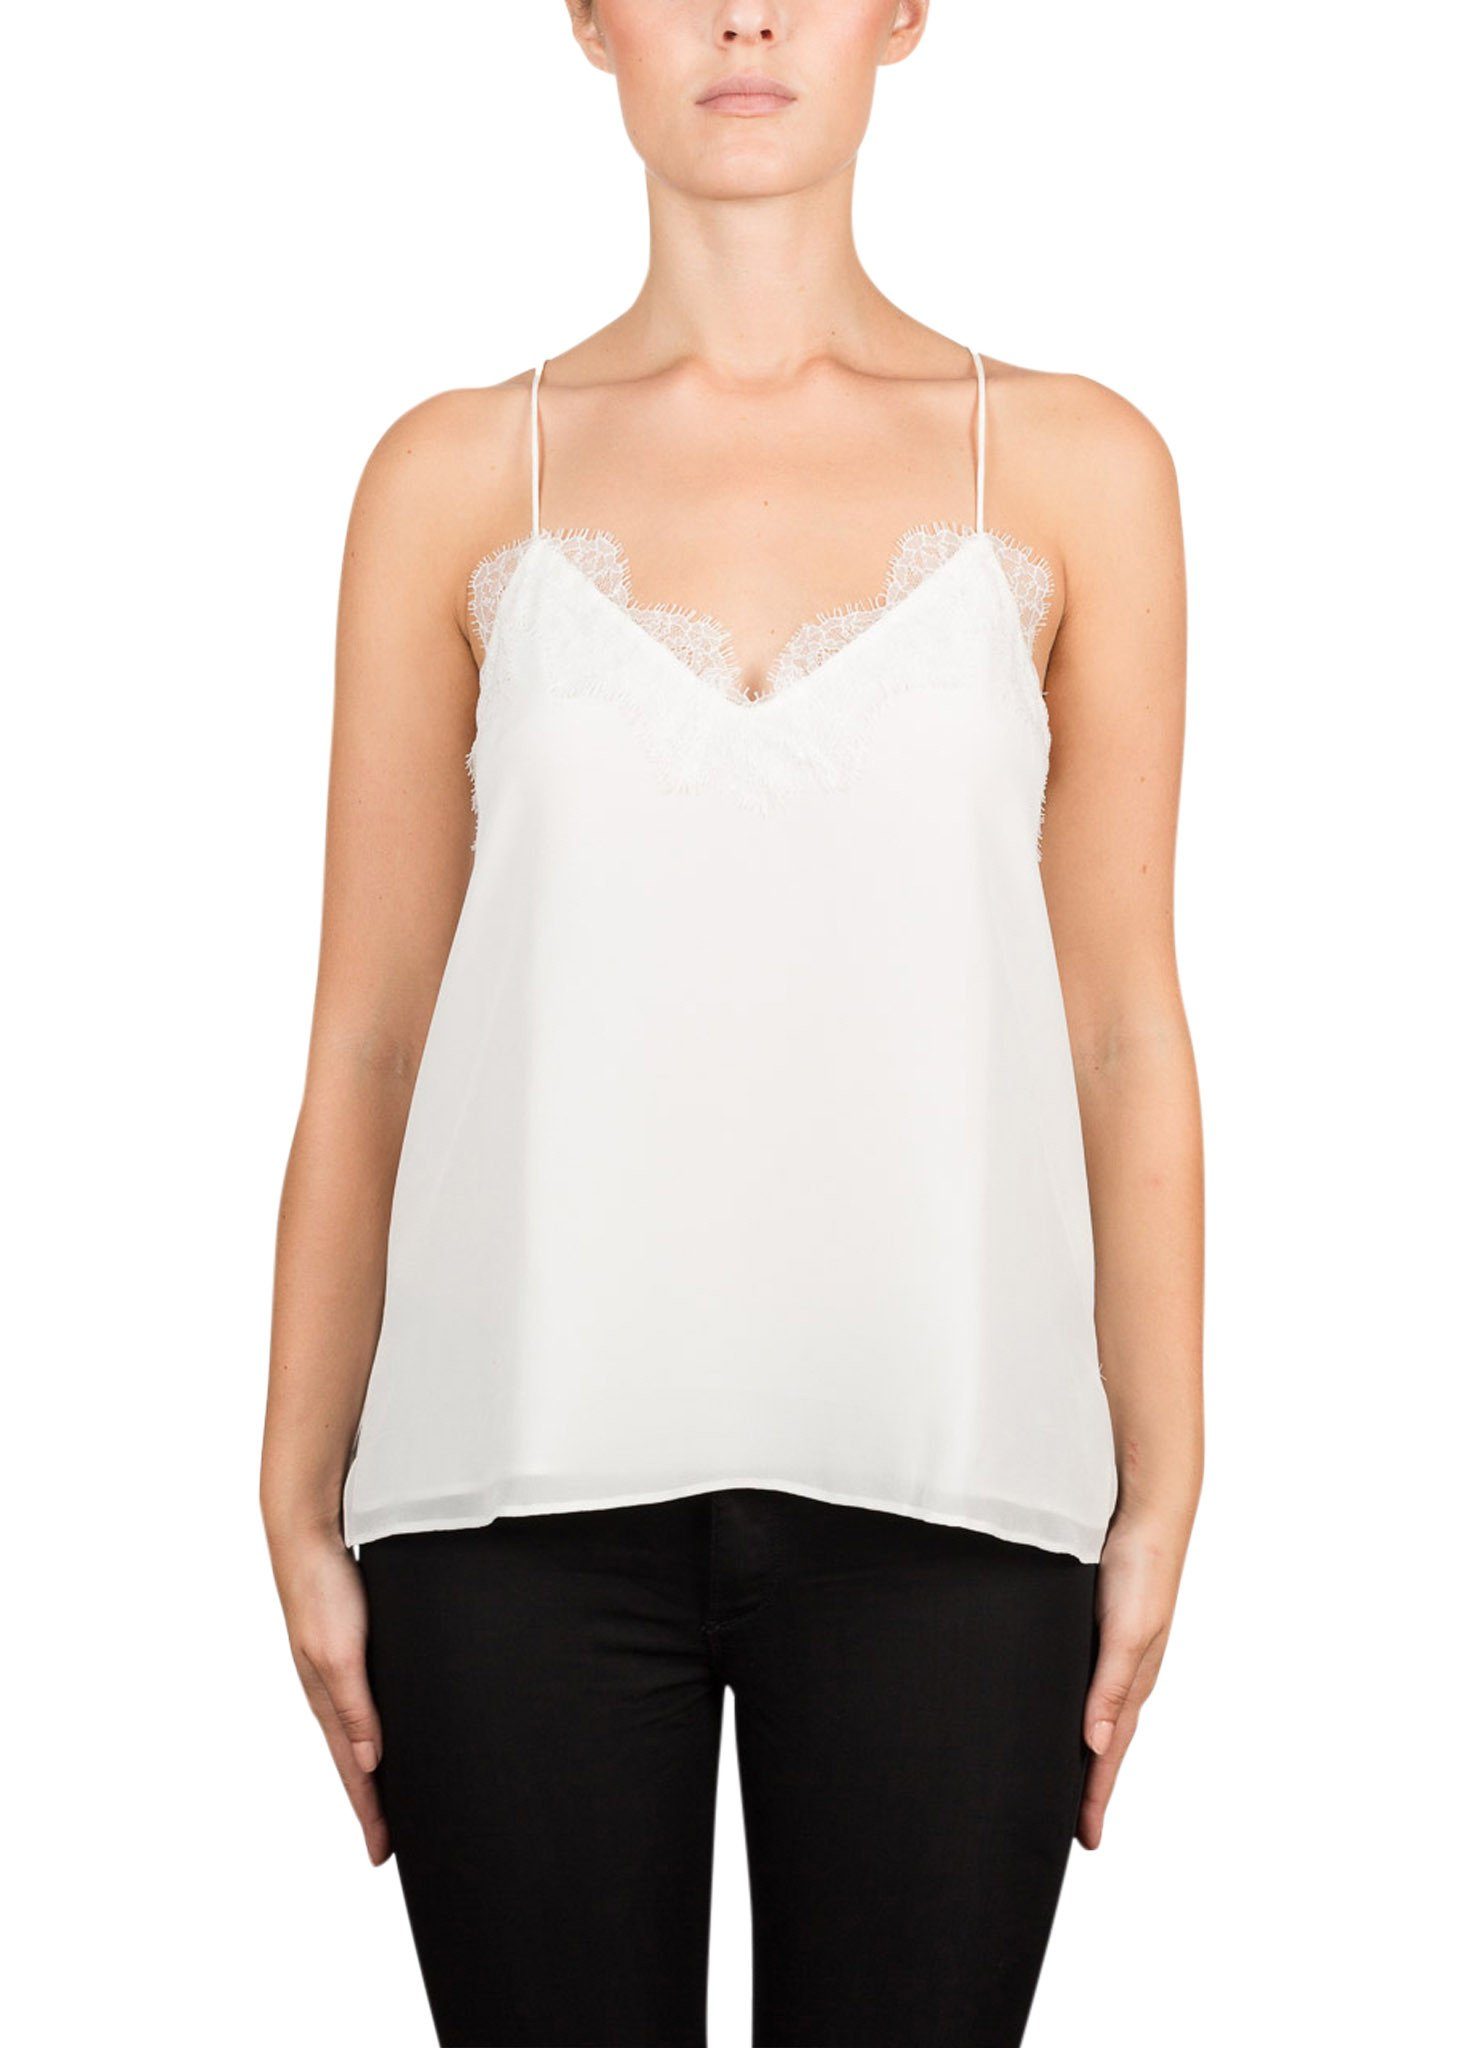 The Racer White – Cami NYC